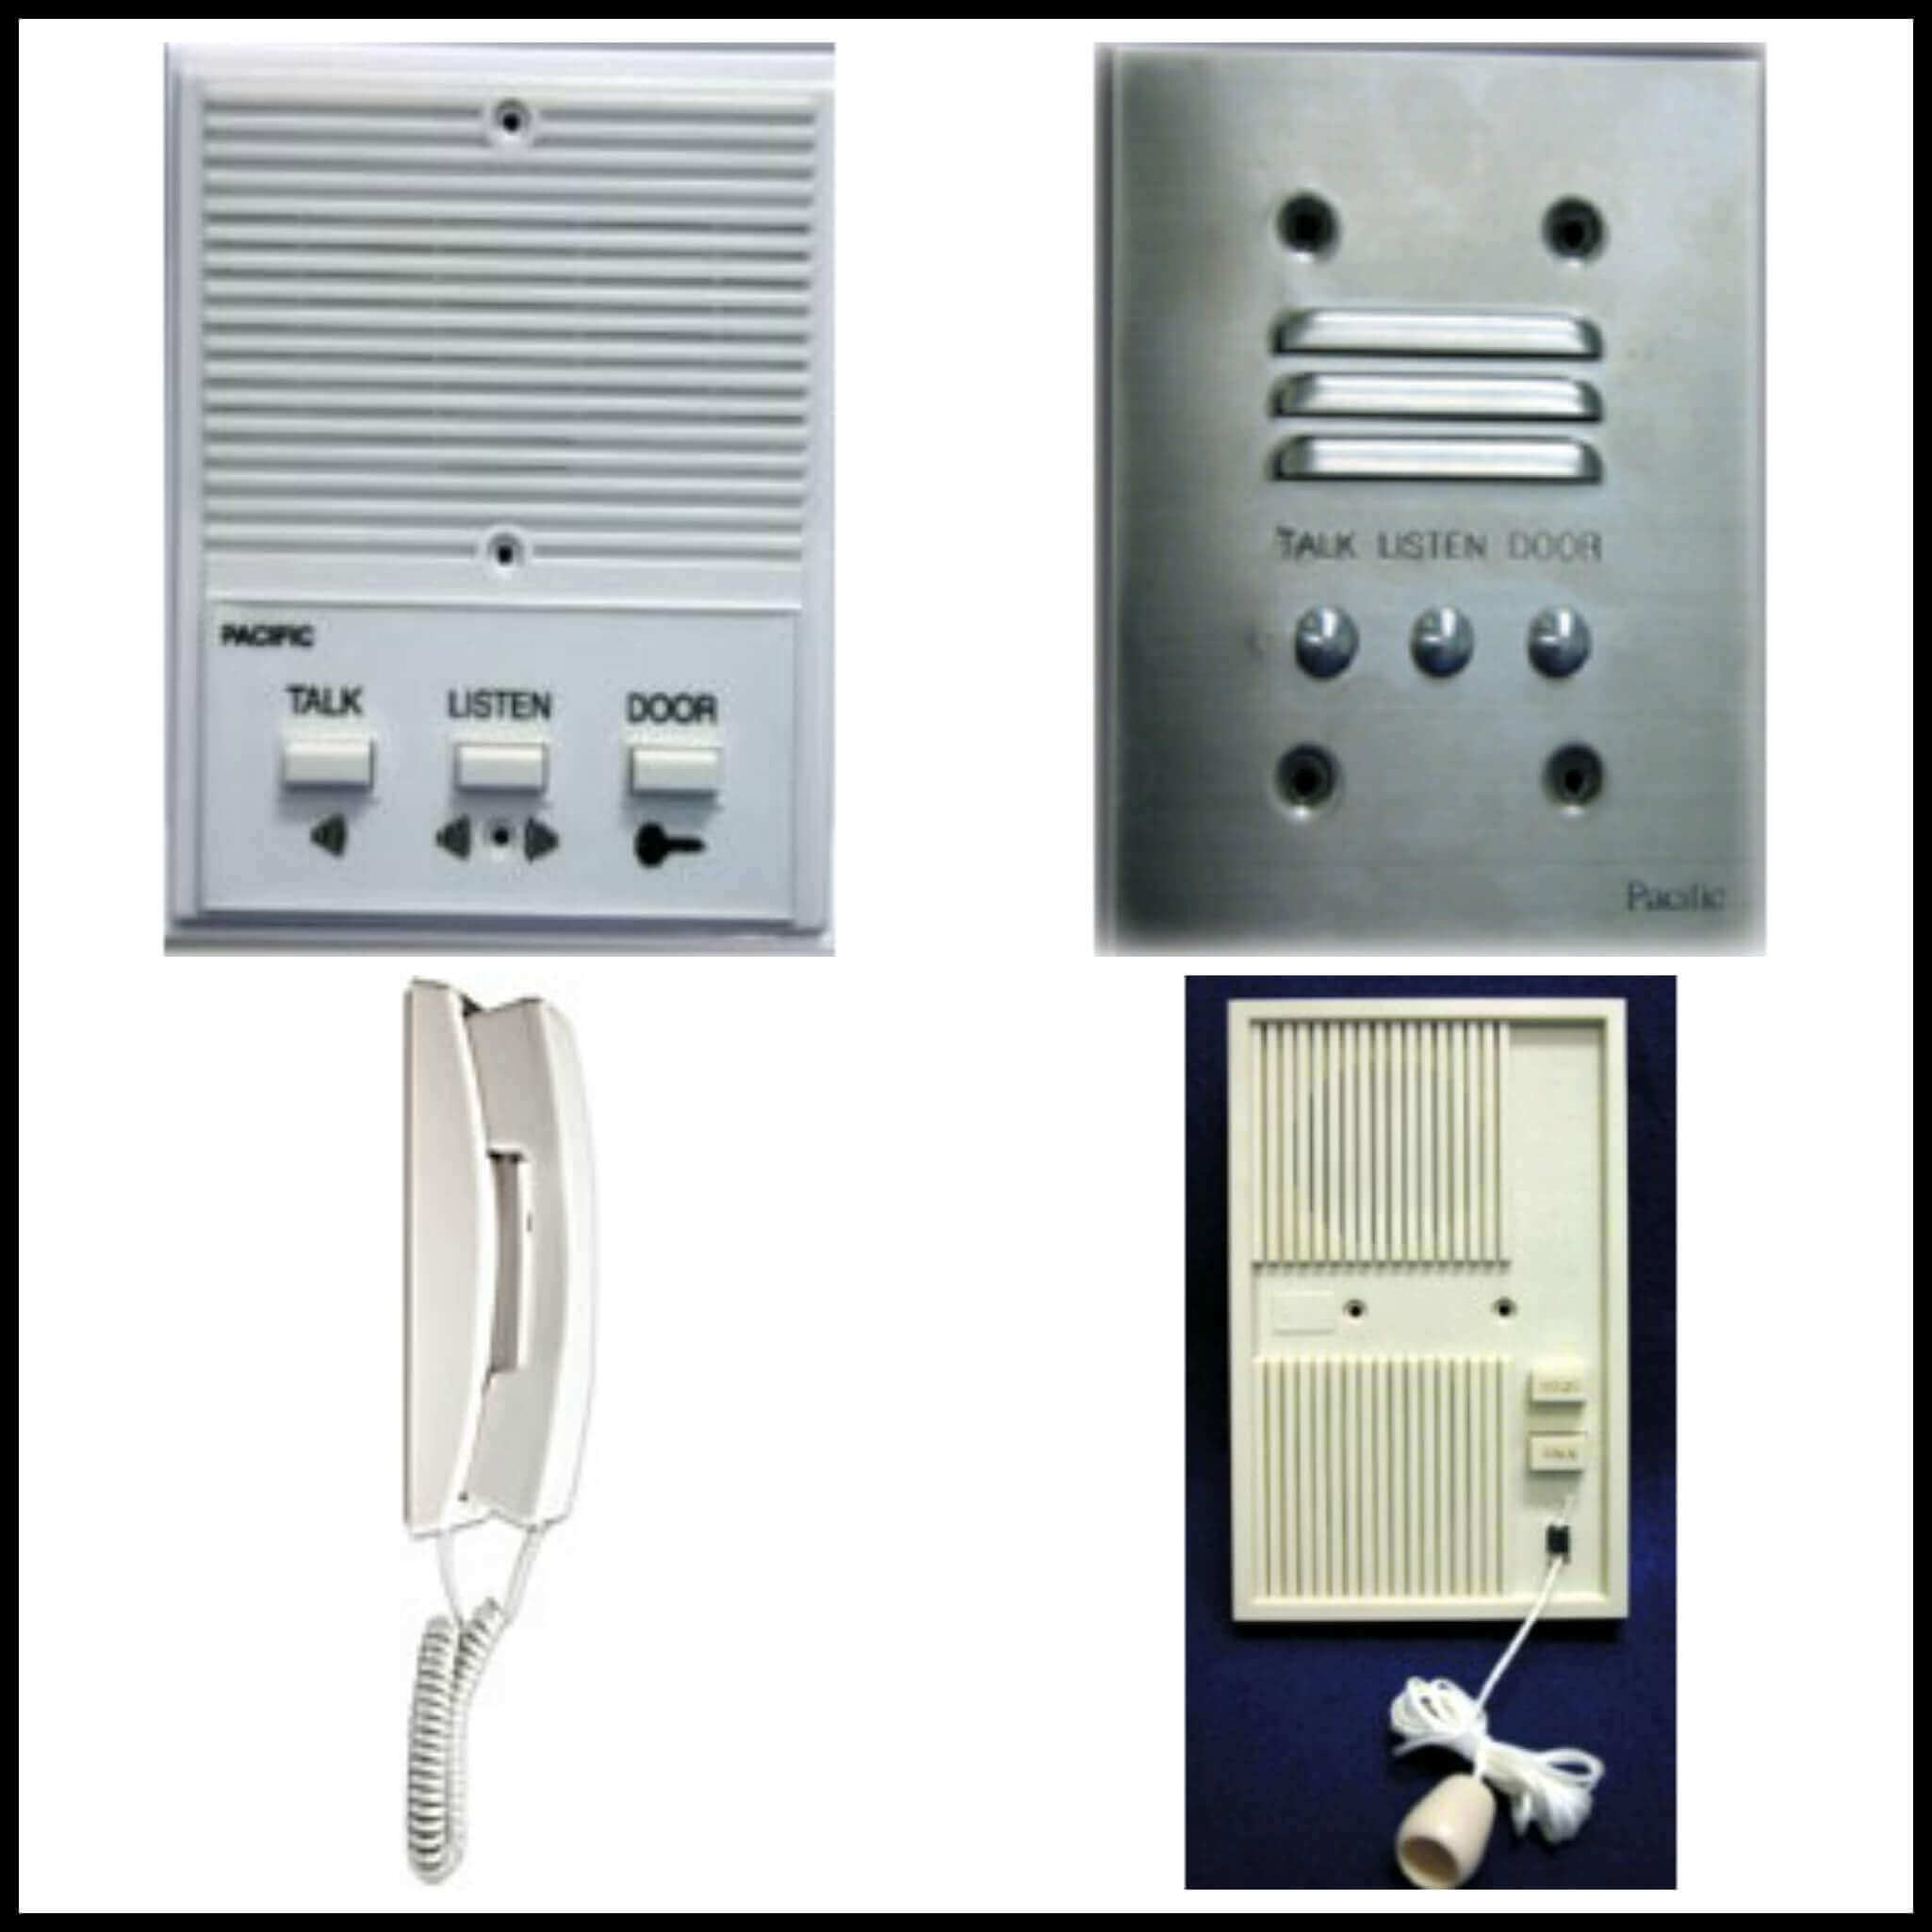 Pacific Intercom System Wiring Diagram Electrical Diagrams Apartment Systems Entry Nutone